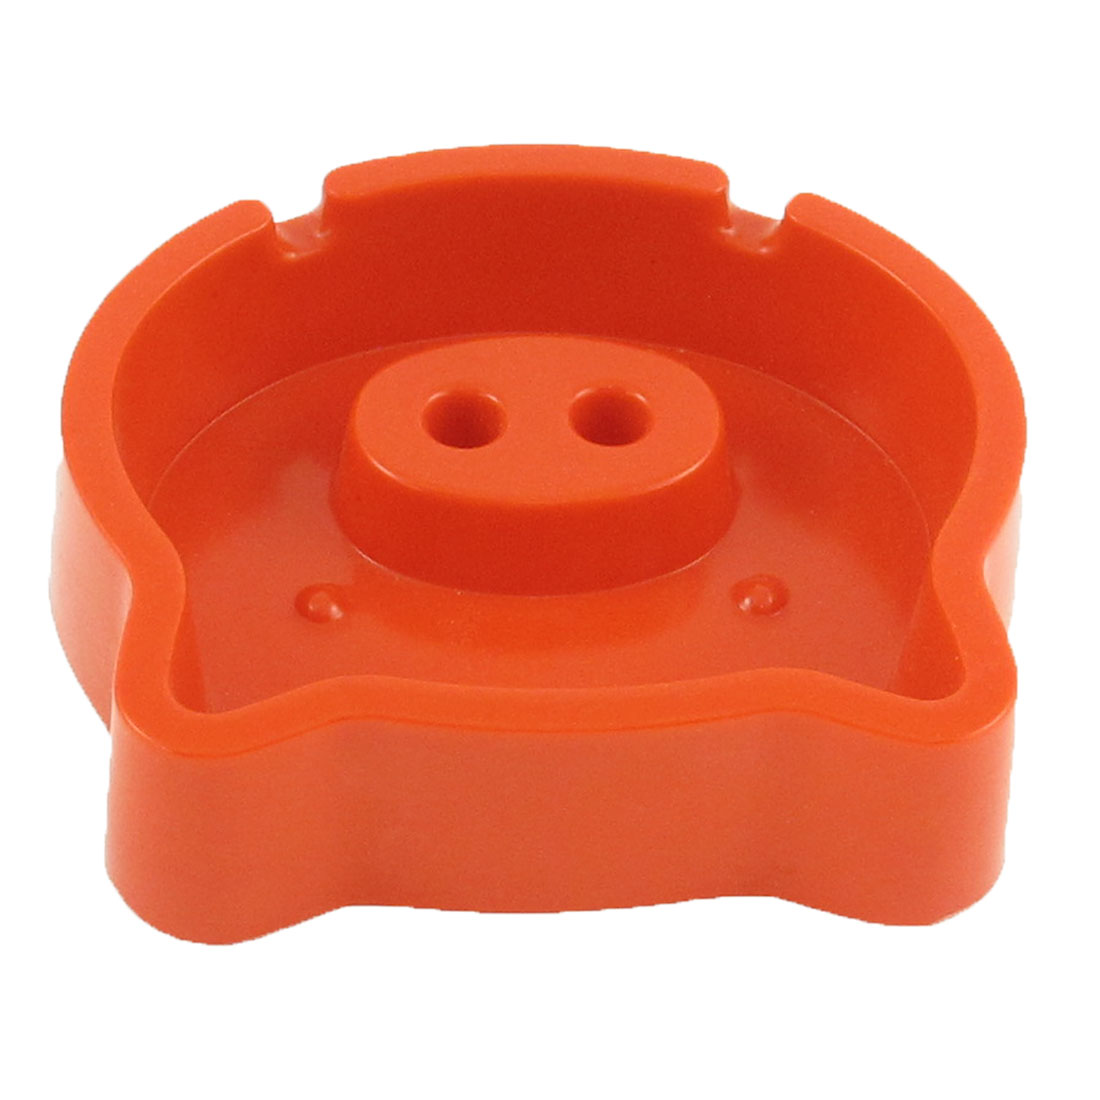 Cartoon Pig Design Orange Plastic Ashtray for Home Office Cafe